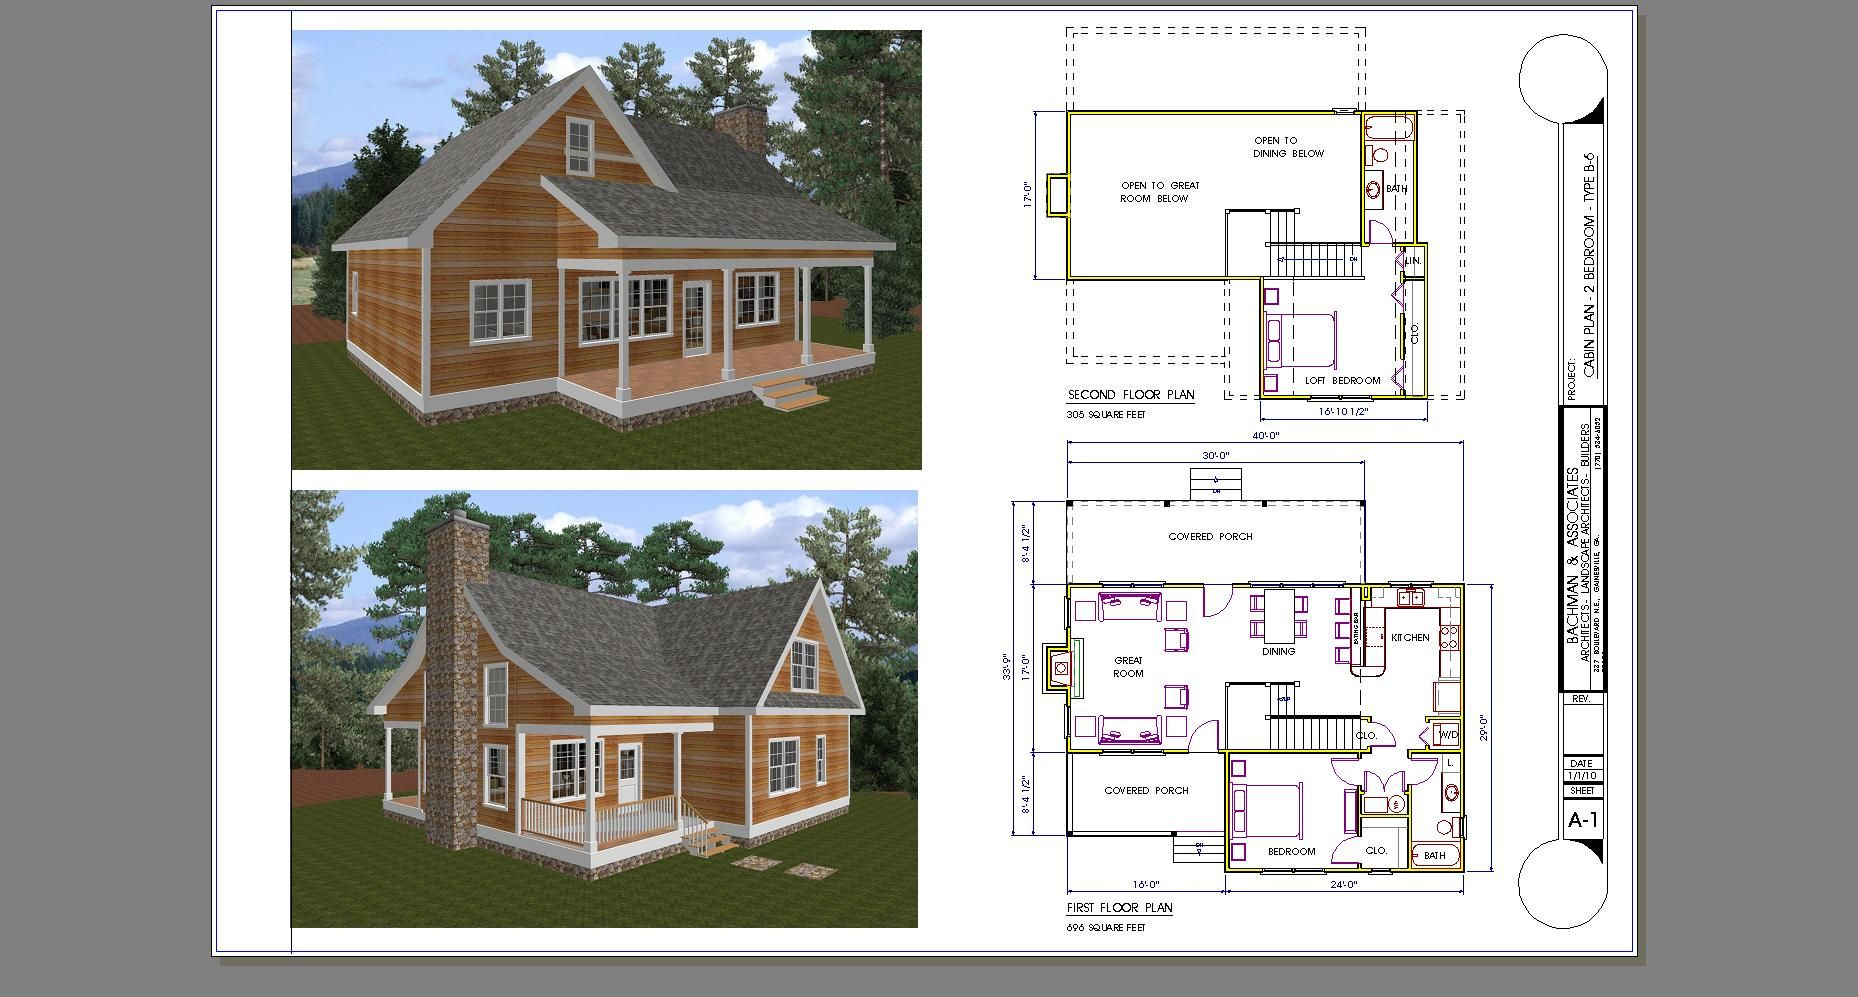 2 Bedroom Design Small House Small 2 Bed 1bath With Loft Floor Plans Two Bedroom